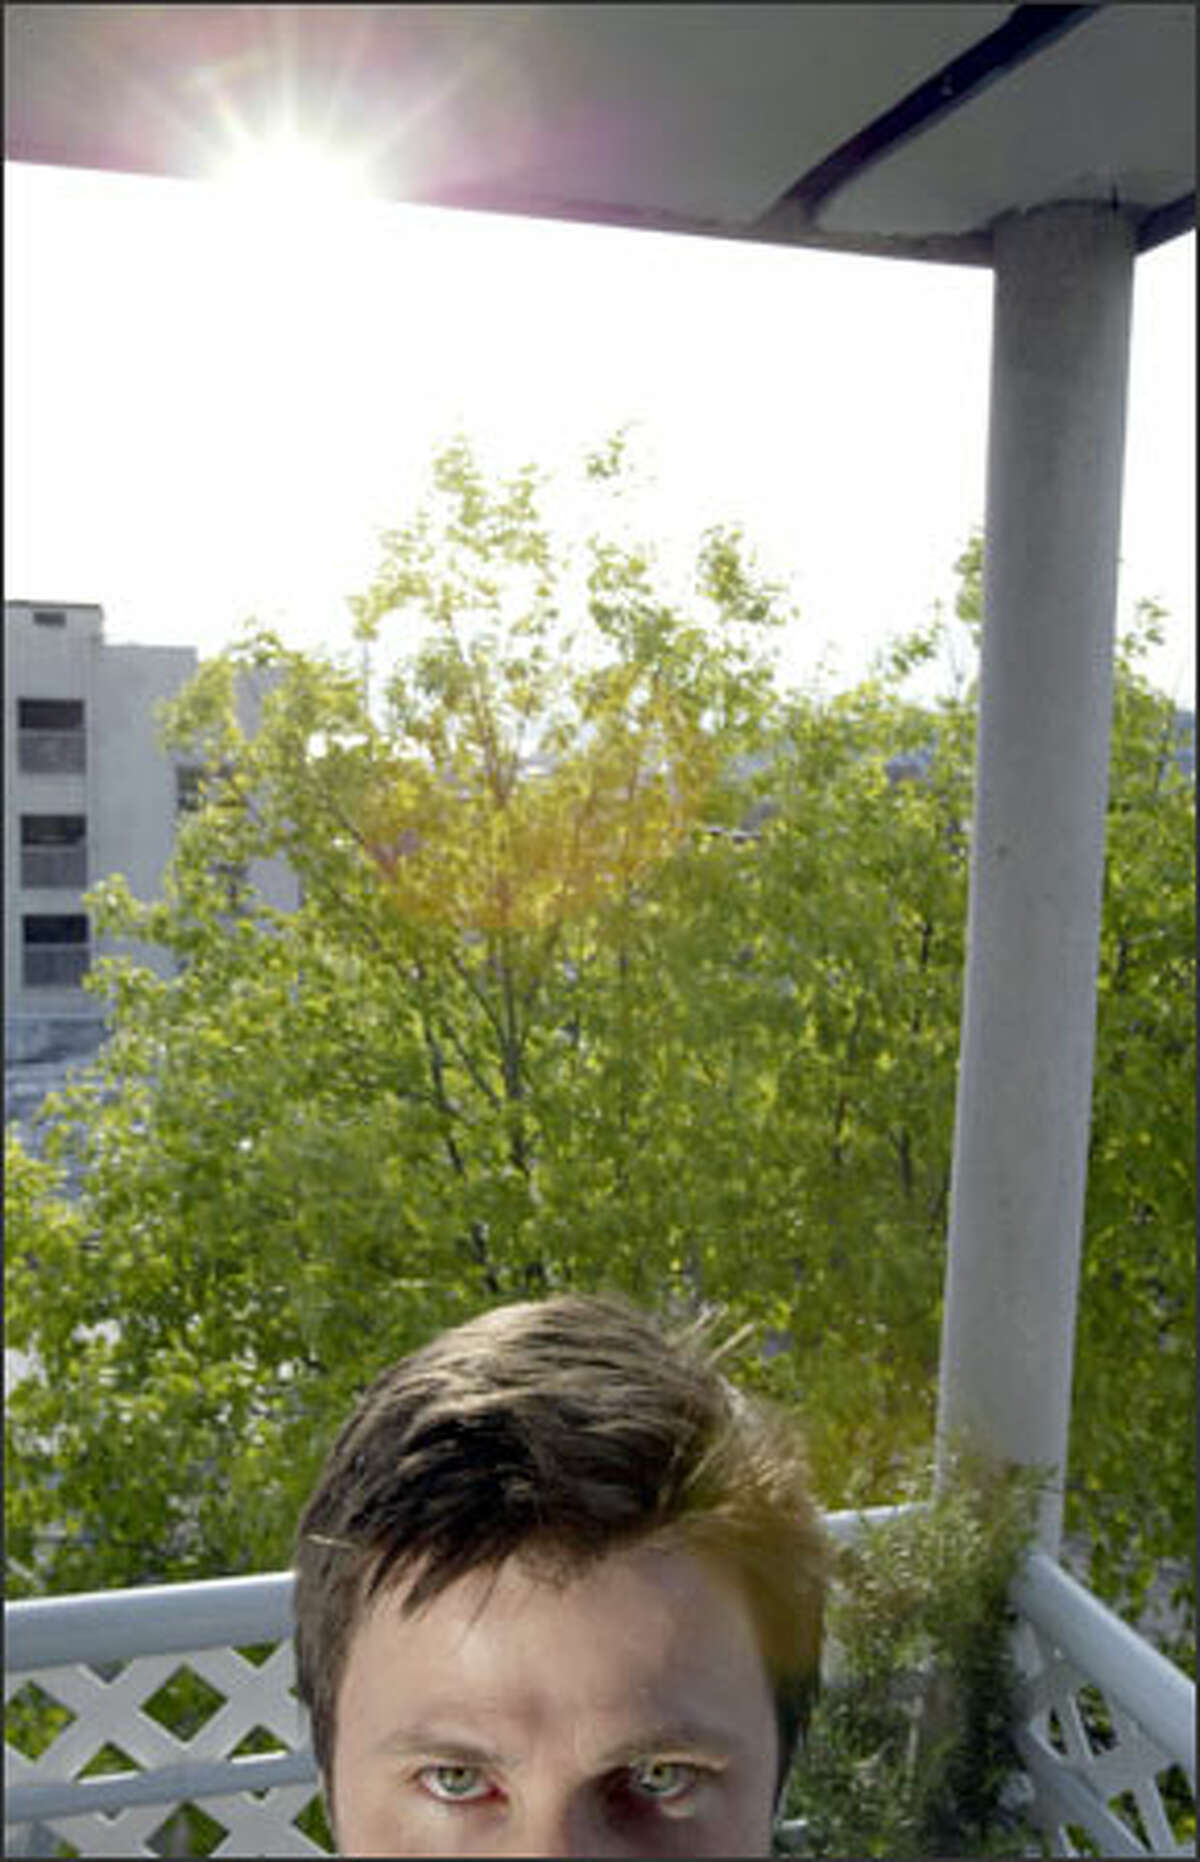 Bryan Lhuillier points out his view-blocking tree from the deck of his apartment on Seattle's Capitol Hill.